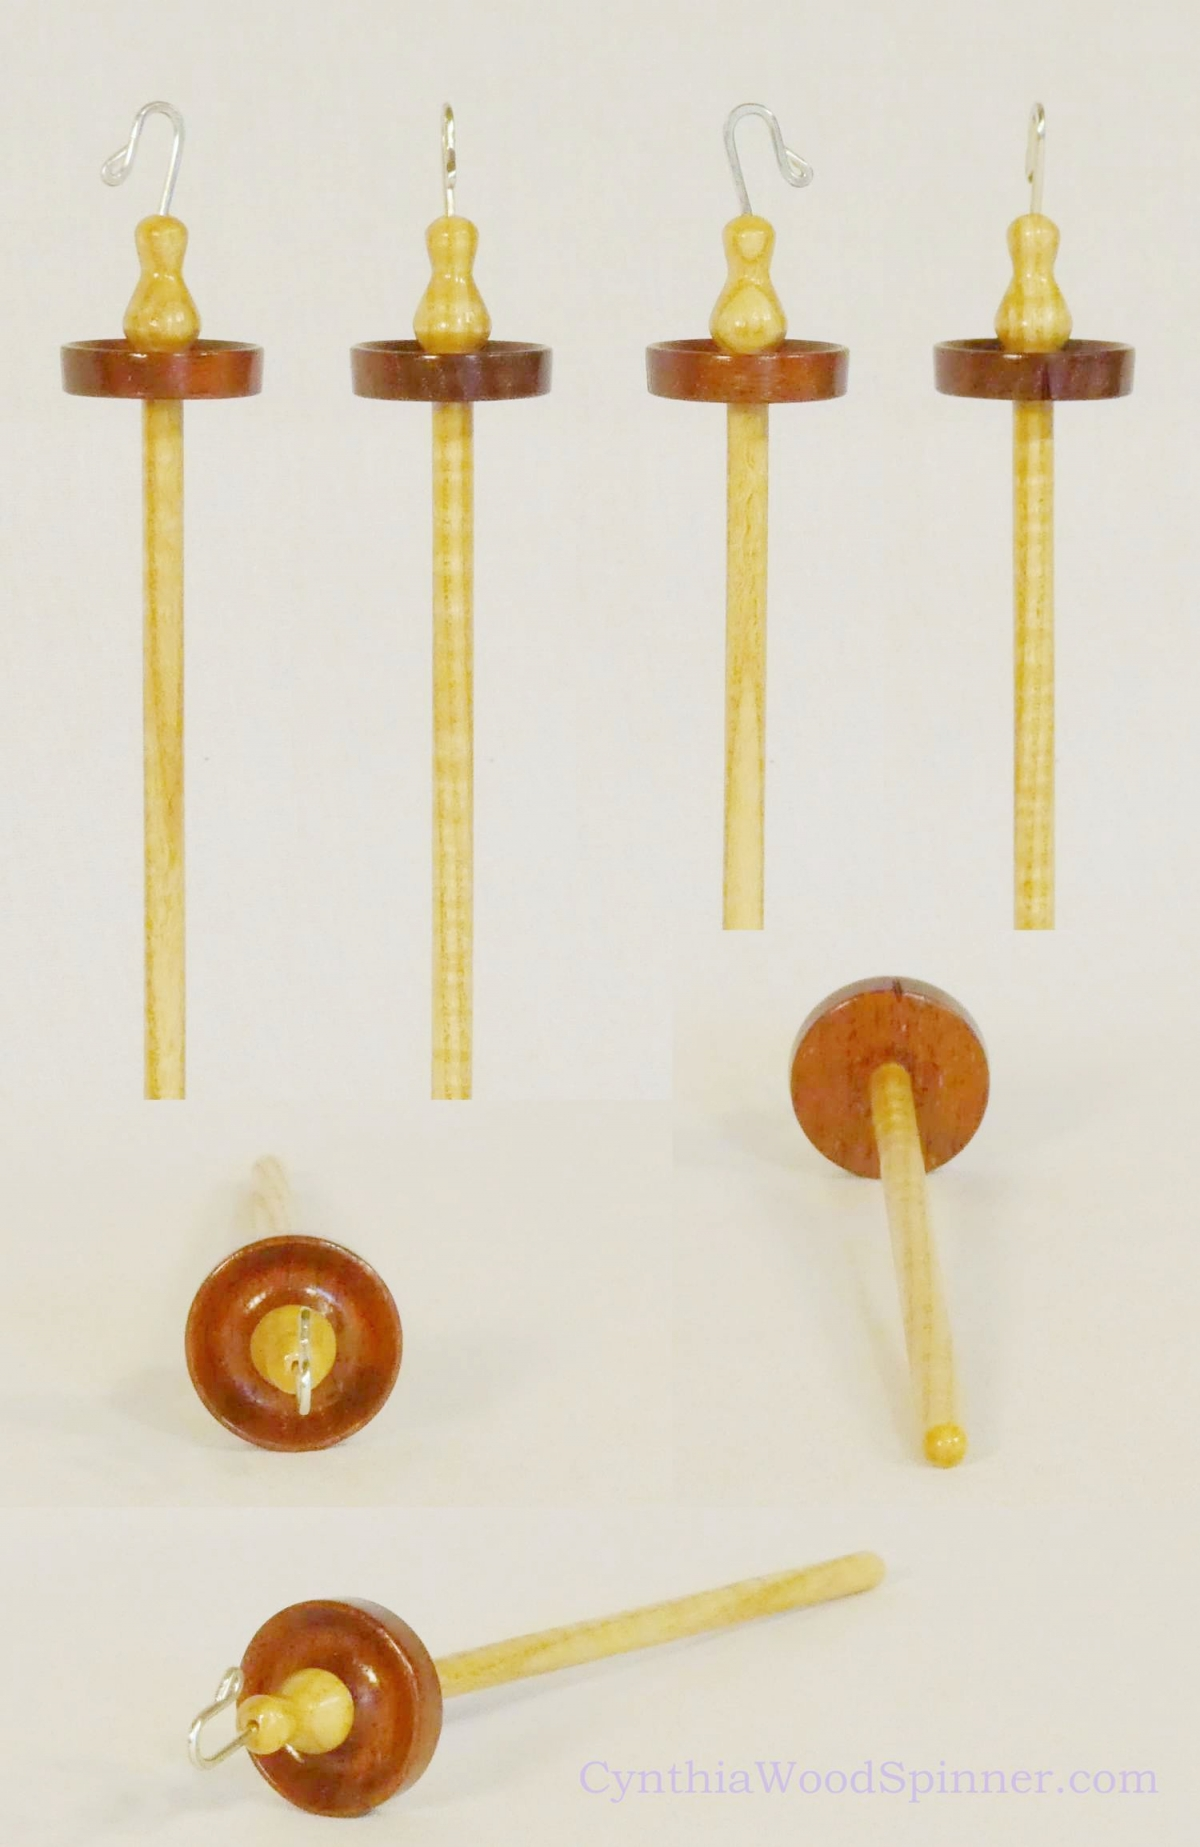 Mahogany and Curly Ash top whorl drop spindle with silver hook and notch hand turned by Cynthia D. Haney